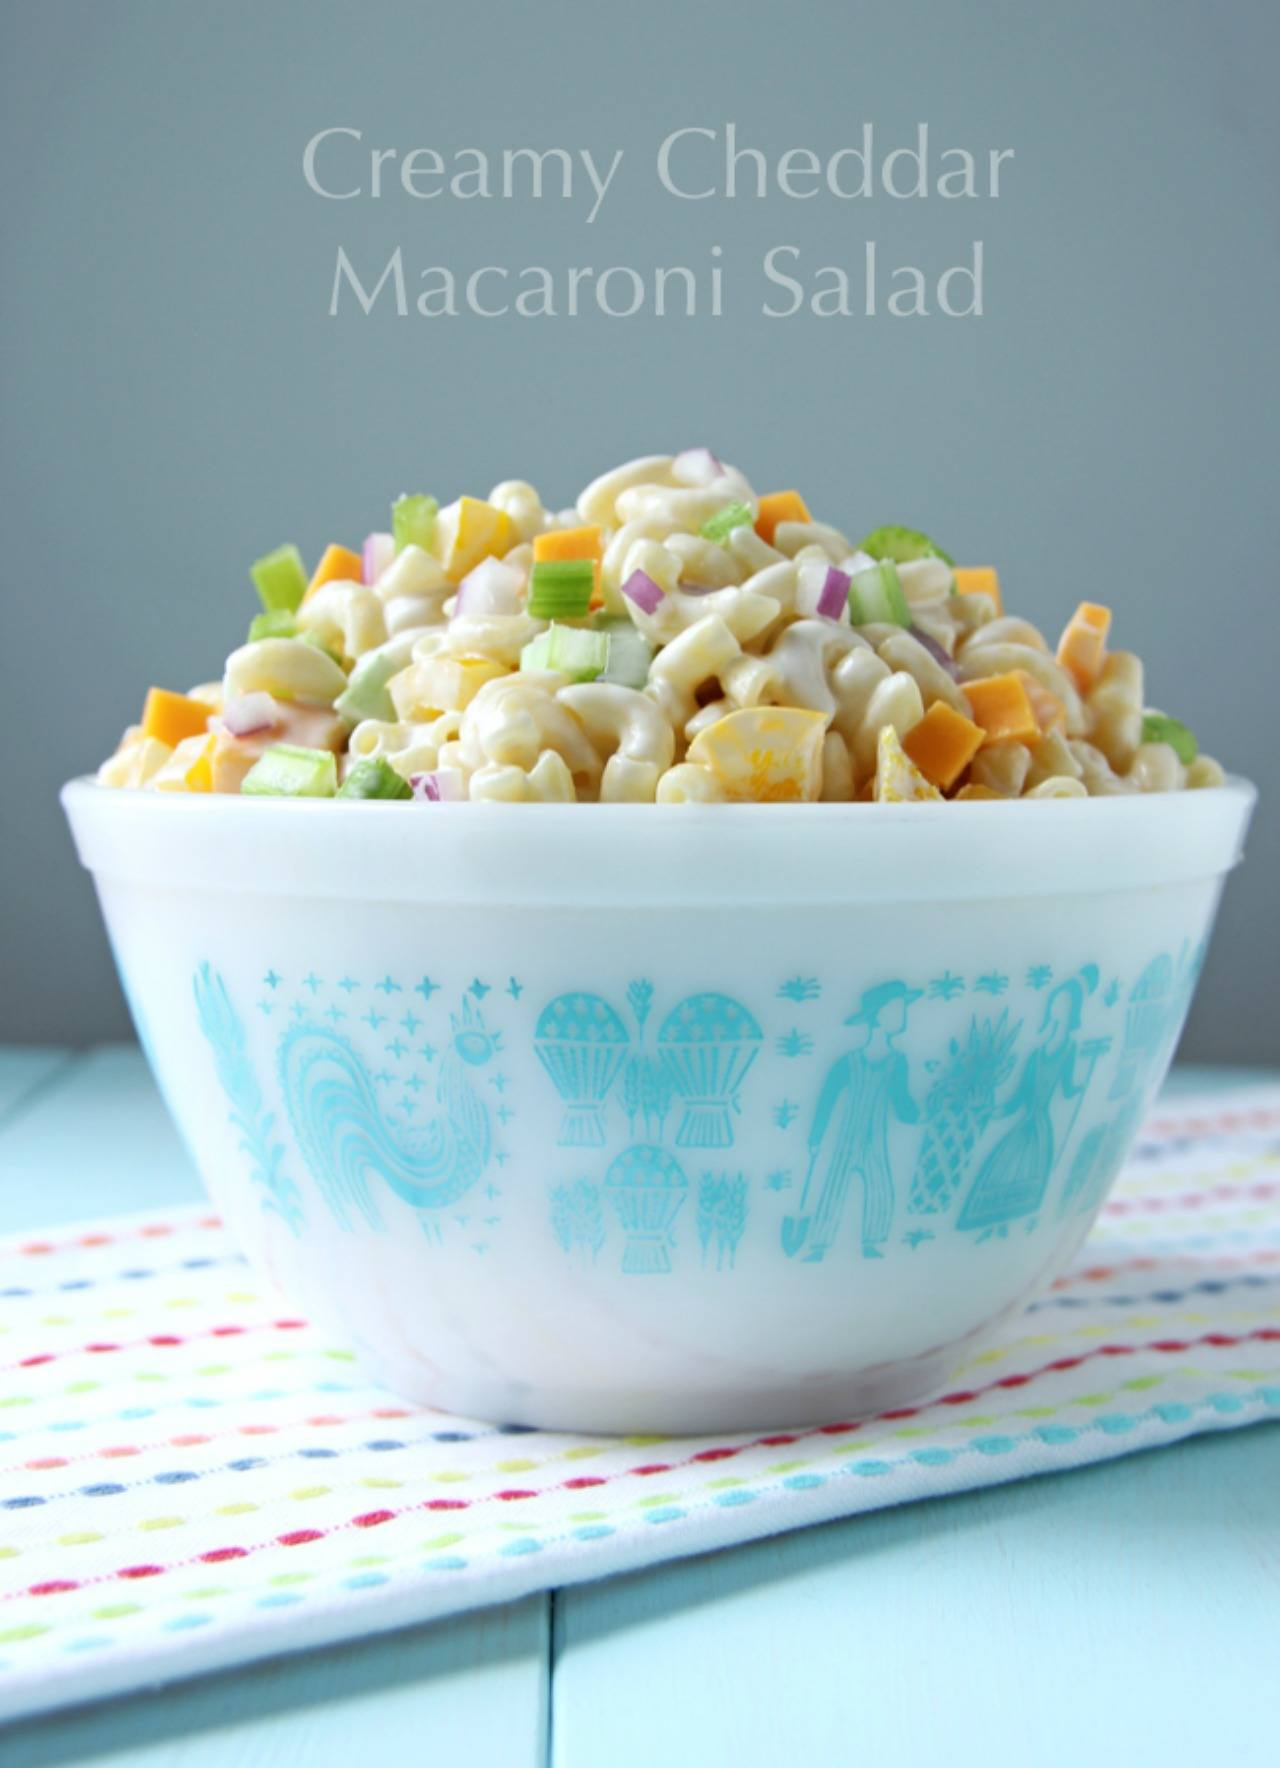 Summer Comfort Food Macaroni Salad